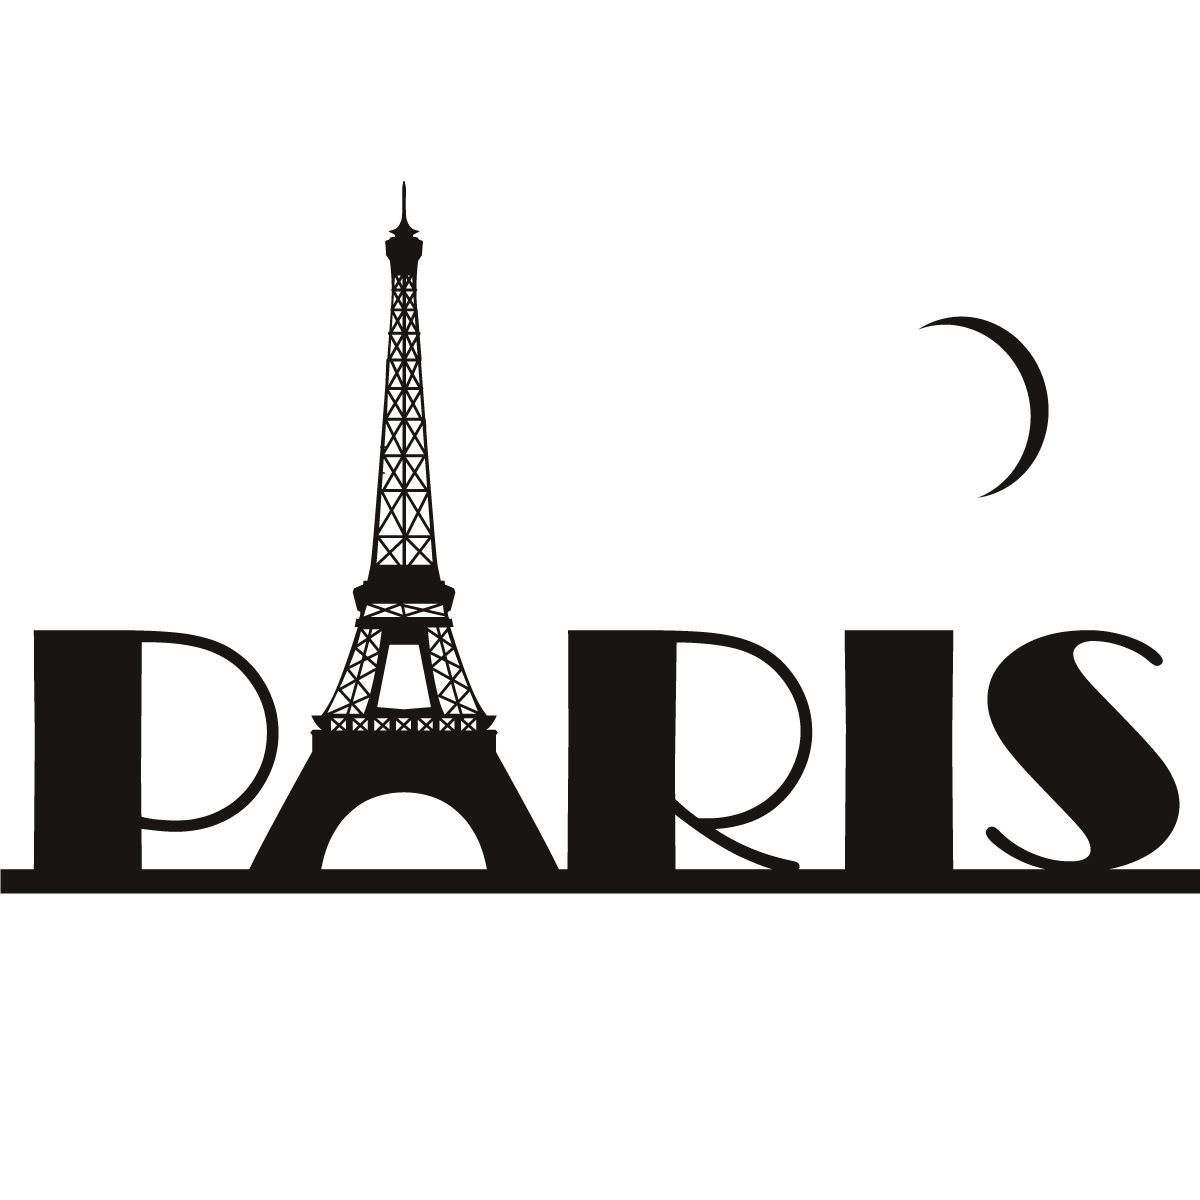 Pray for paris clipart image freeuse download Details about Paris Eiffel Tower France Wall Art Sticker ... image freeuse download